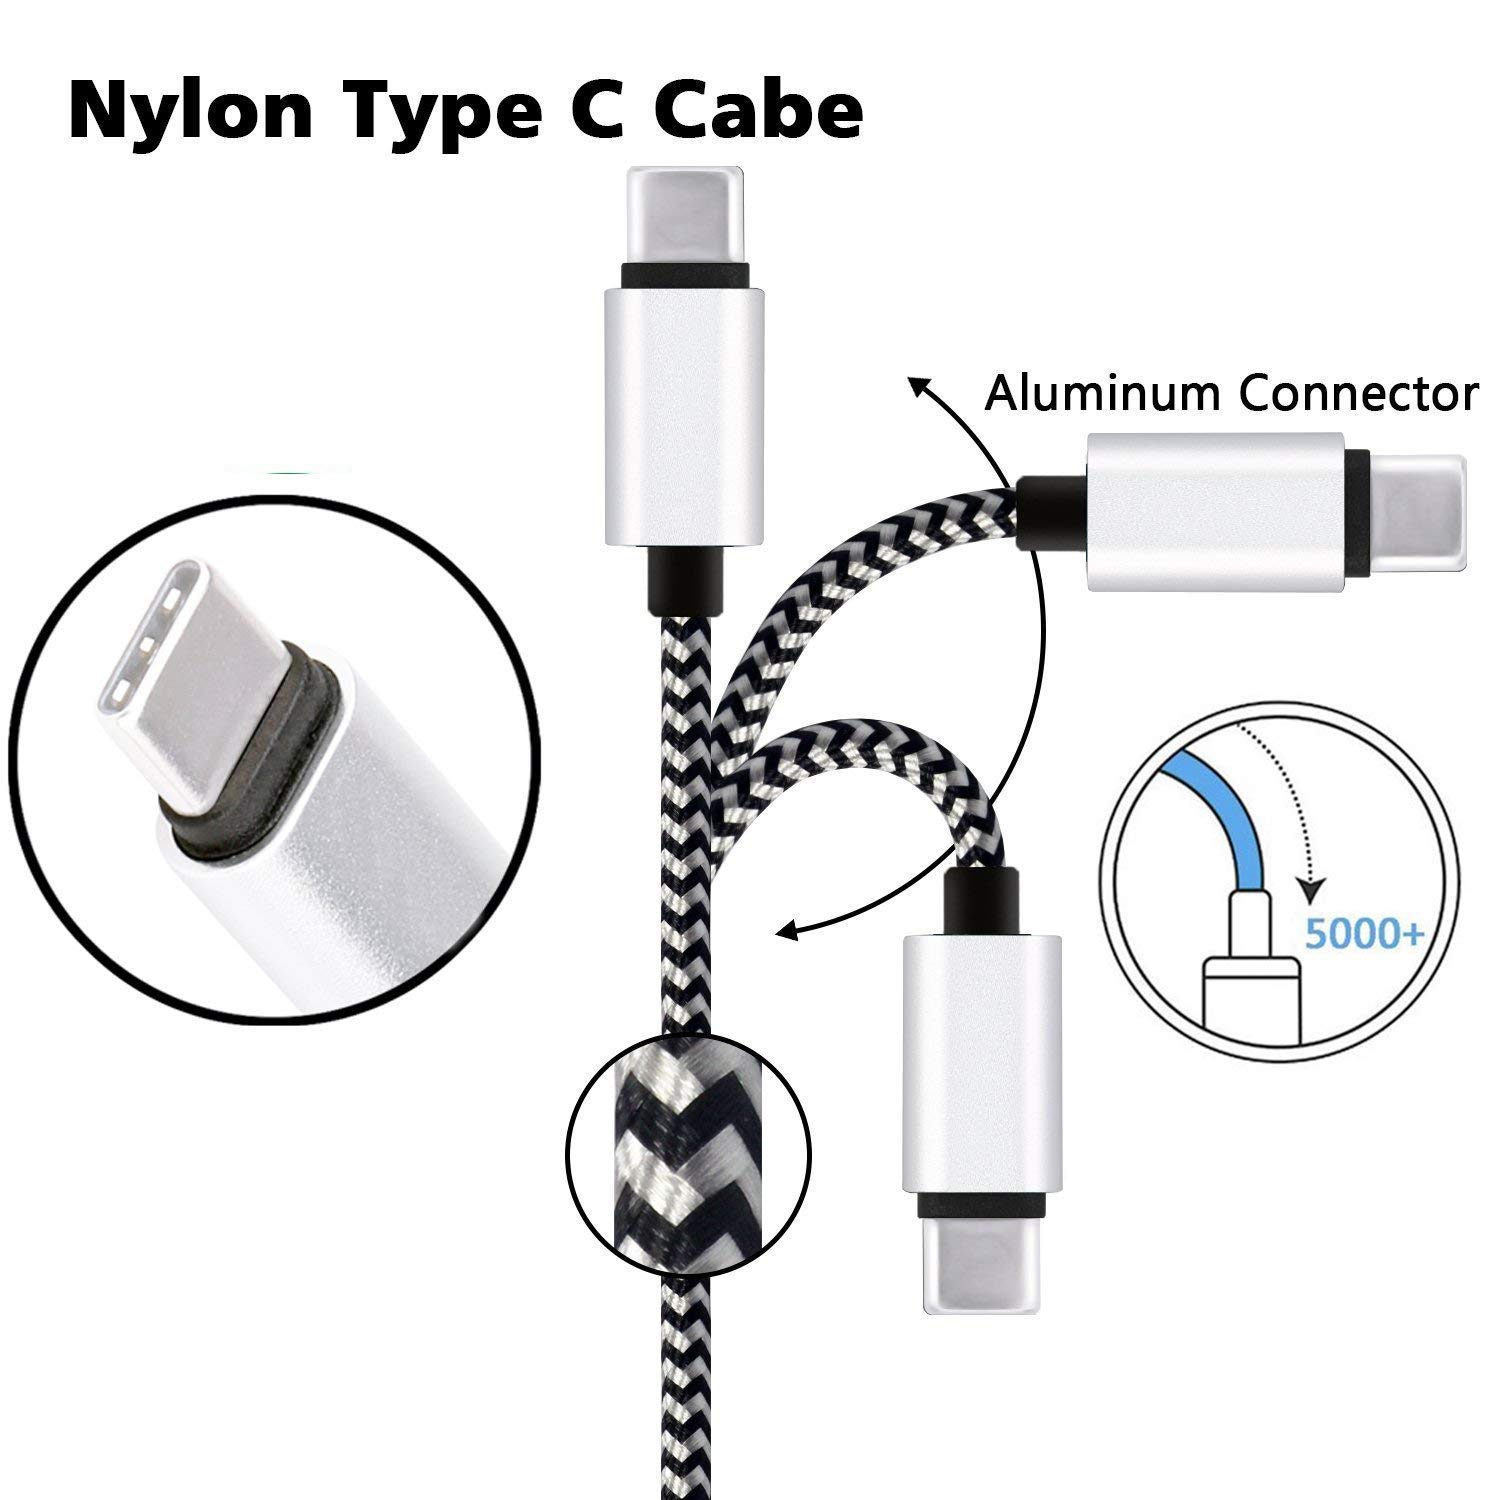 USB Type C Charger Cable [3-Pack, 6ft] Myckuu Fast Quick Charge USB-C Nylon Braided Cord for Samsung S9/S8 Plus, Galaxy Note 9/8, LG Stylo 4/G7 Thinq, Moto G6/Z3, ZTE Blade Zmax - White/Black